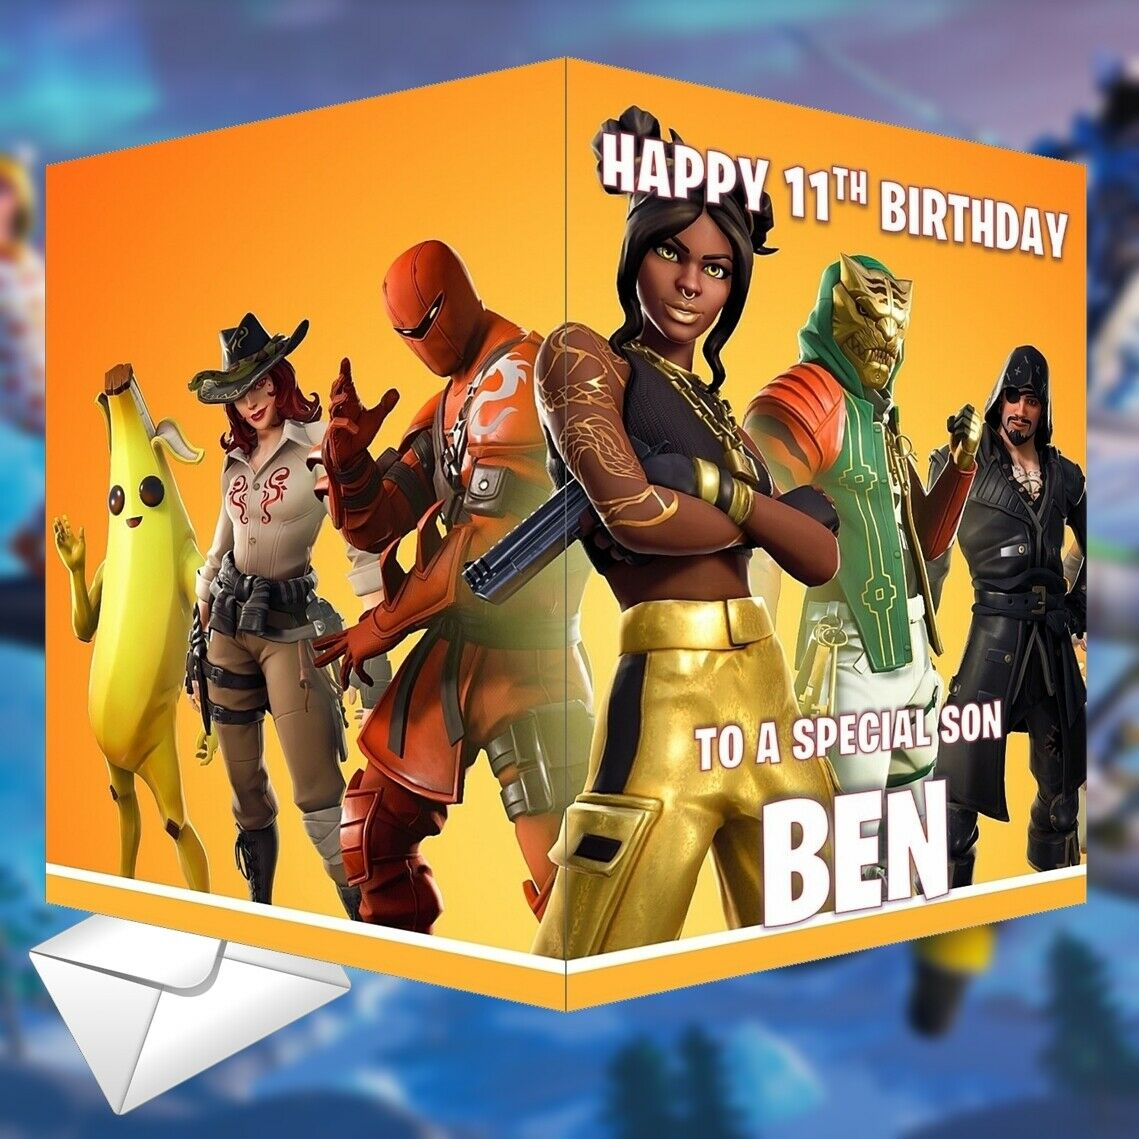 Details about Fortnite Birthday Card Season 8 PERSONALISED Any NAME, AGE or  RELATION 14x21cm